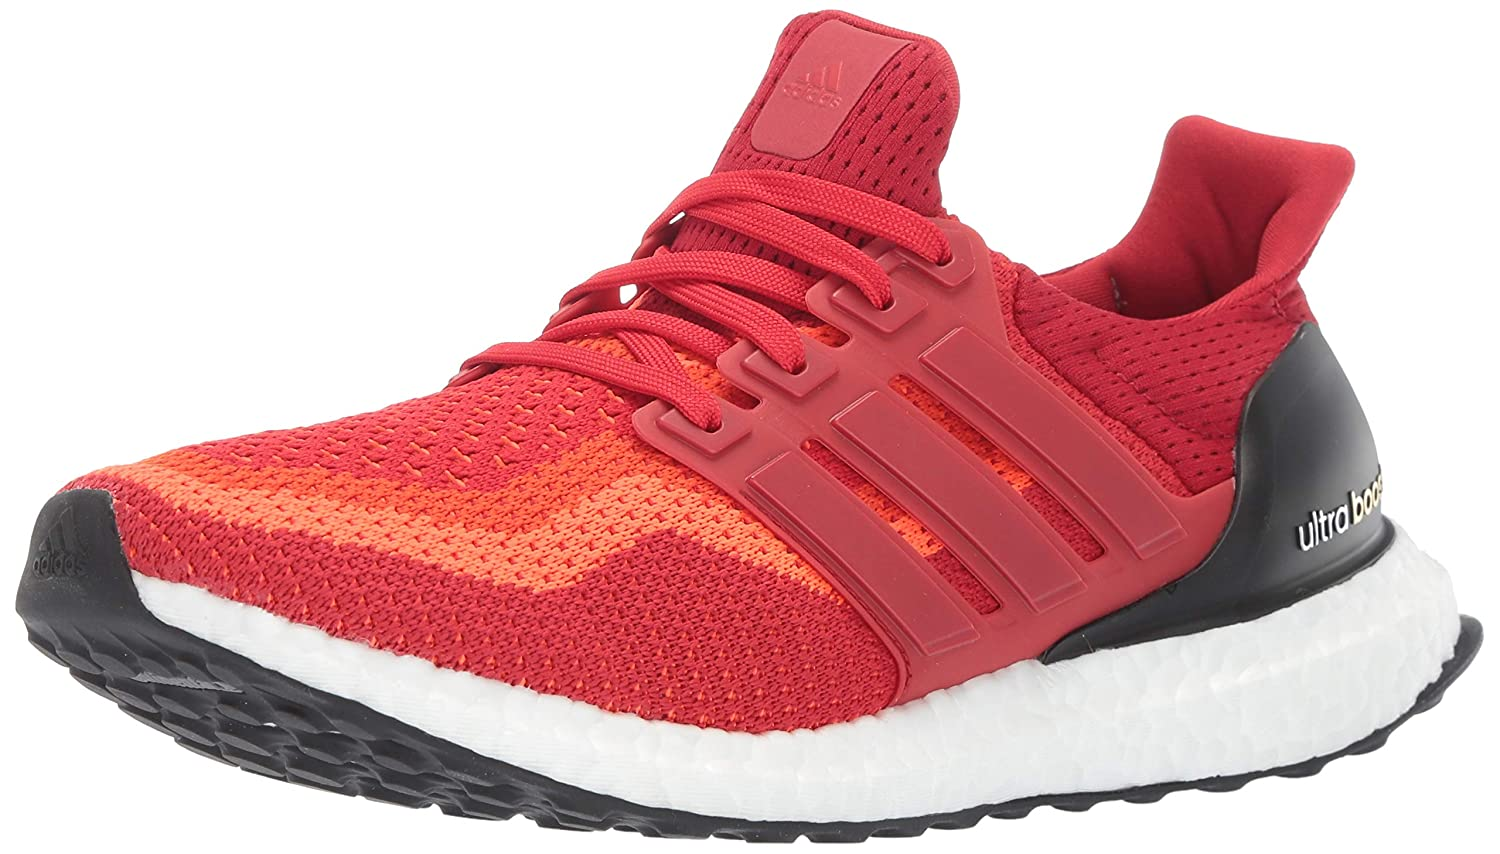 Solar Red Power Red Black adidas Performance Men's Ultra Boost M Running shoes